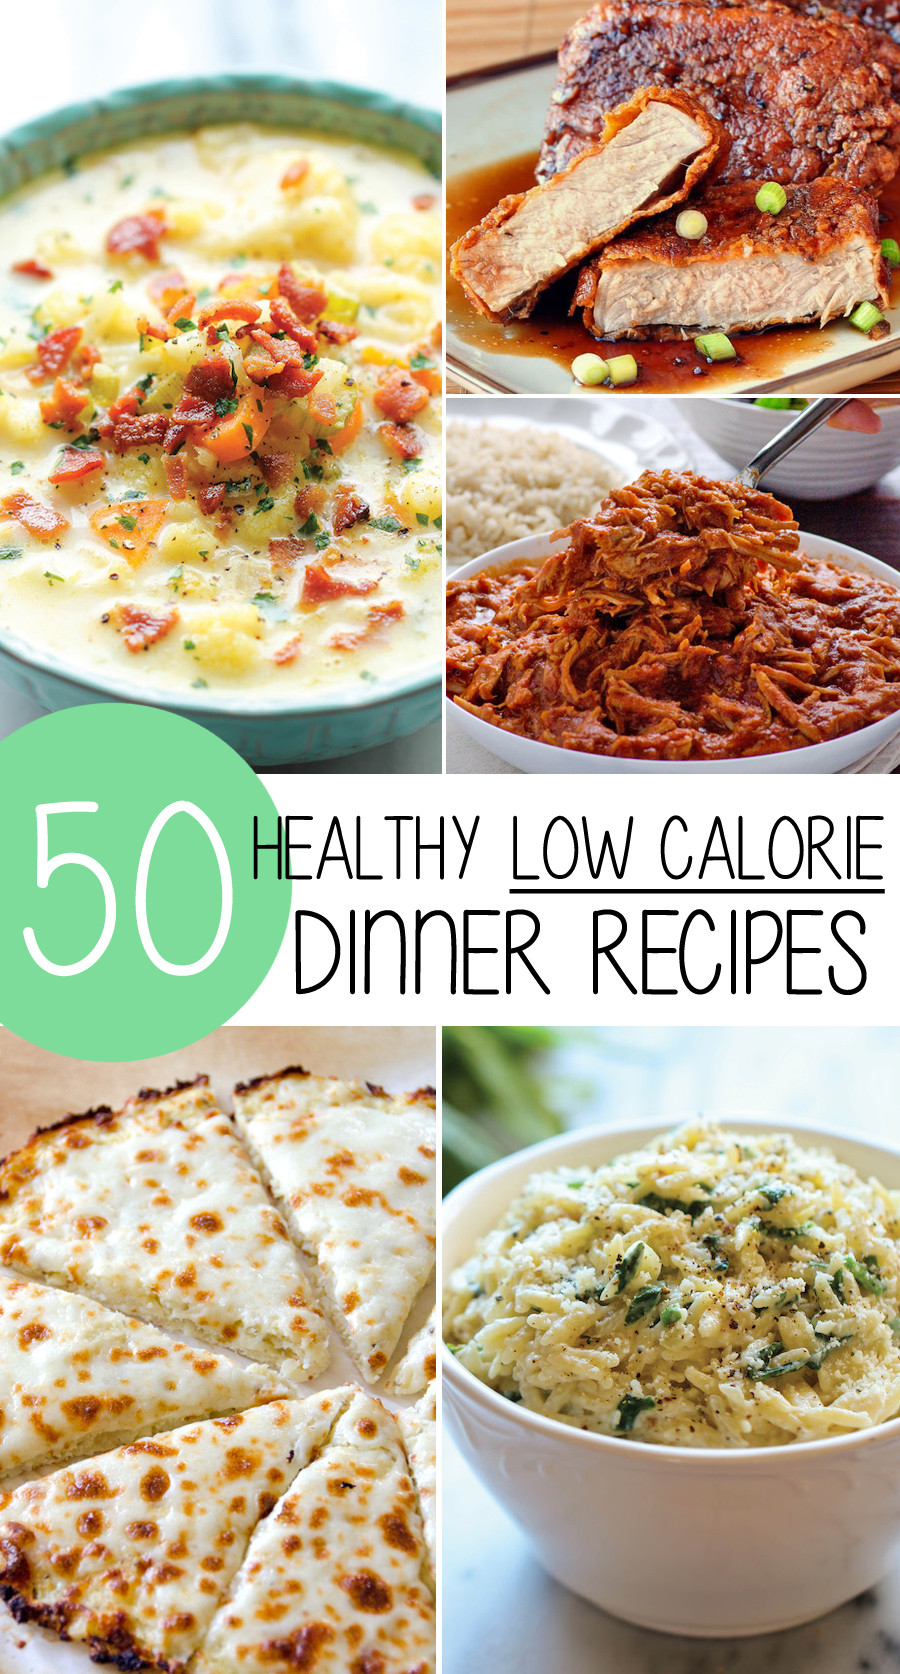 Easy Low Cholesterol Recipes For Dinner  50 Healthy Low Calorie Weight Loss Dinner Recipes